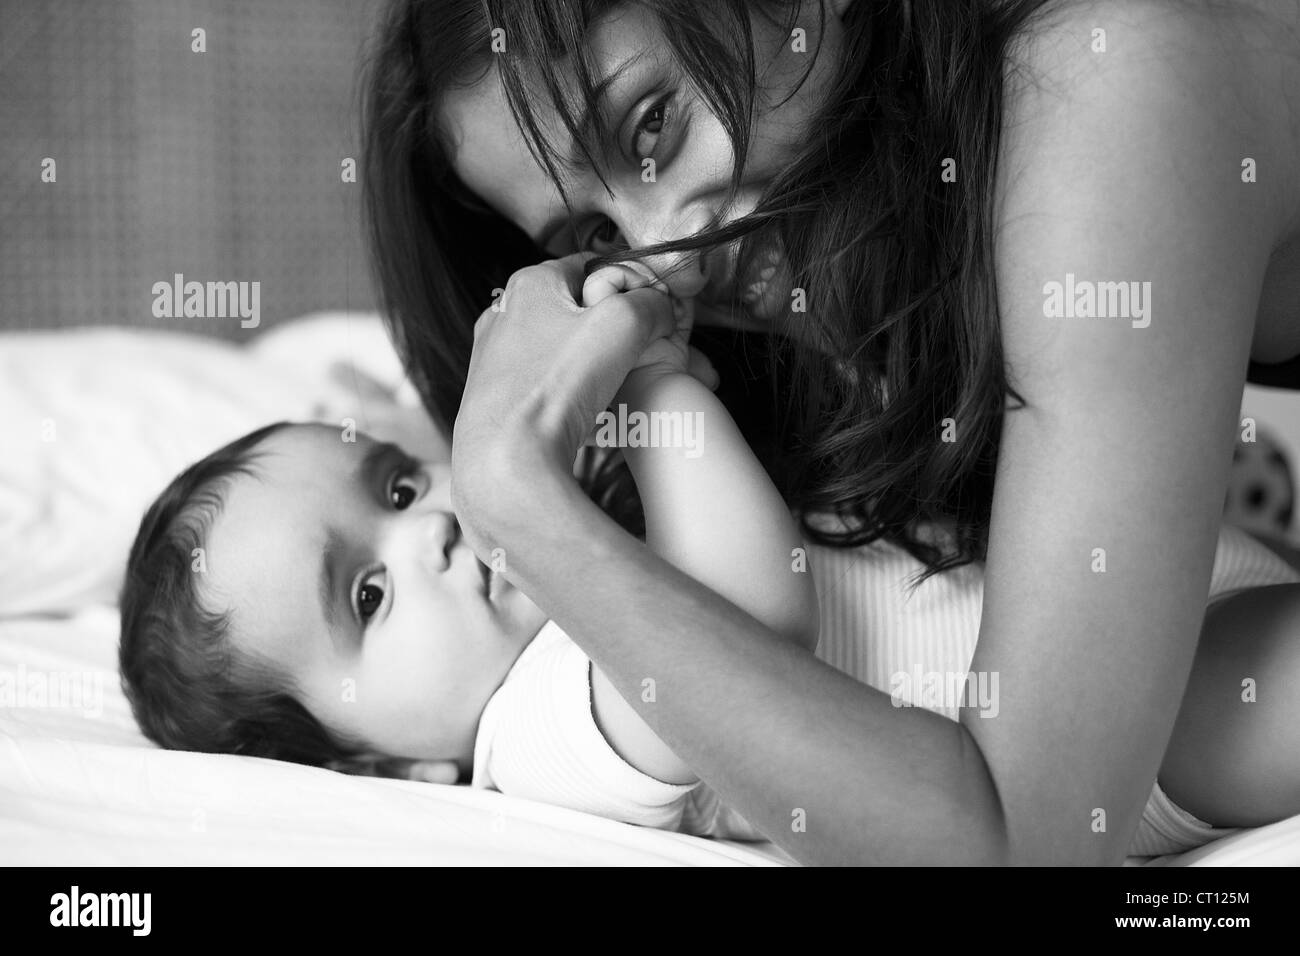 Mother and baby laying on bed - Stock Image